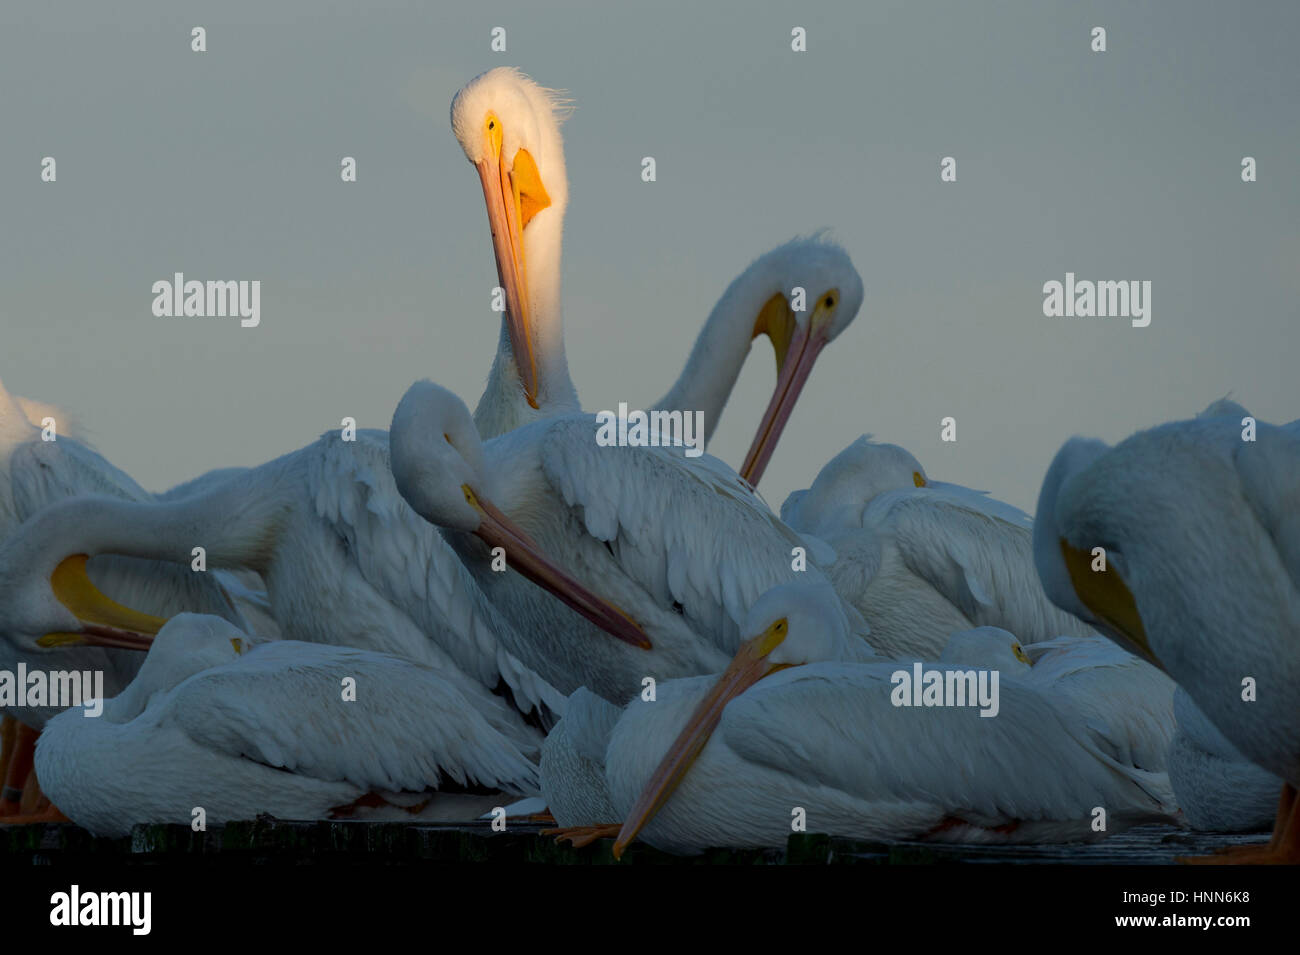 A single White Pelican stands out in a spotlight of sun among a flock of other pelicans resting and preening on - Stock Image